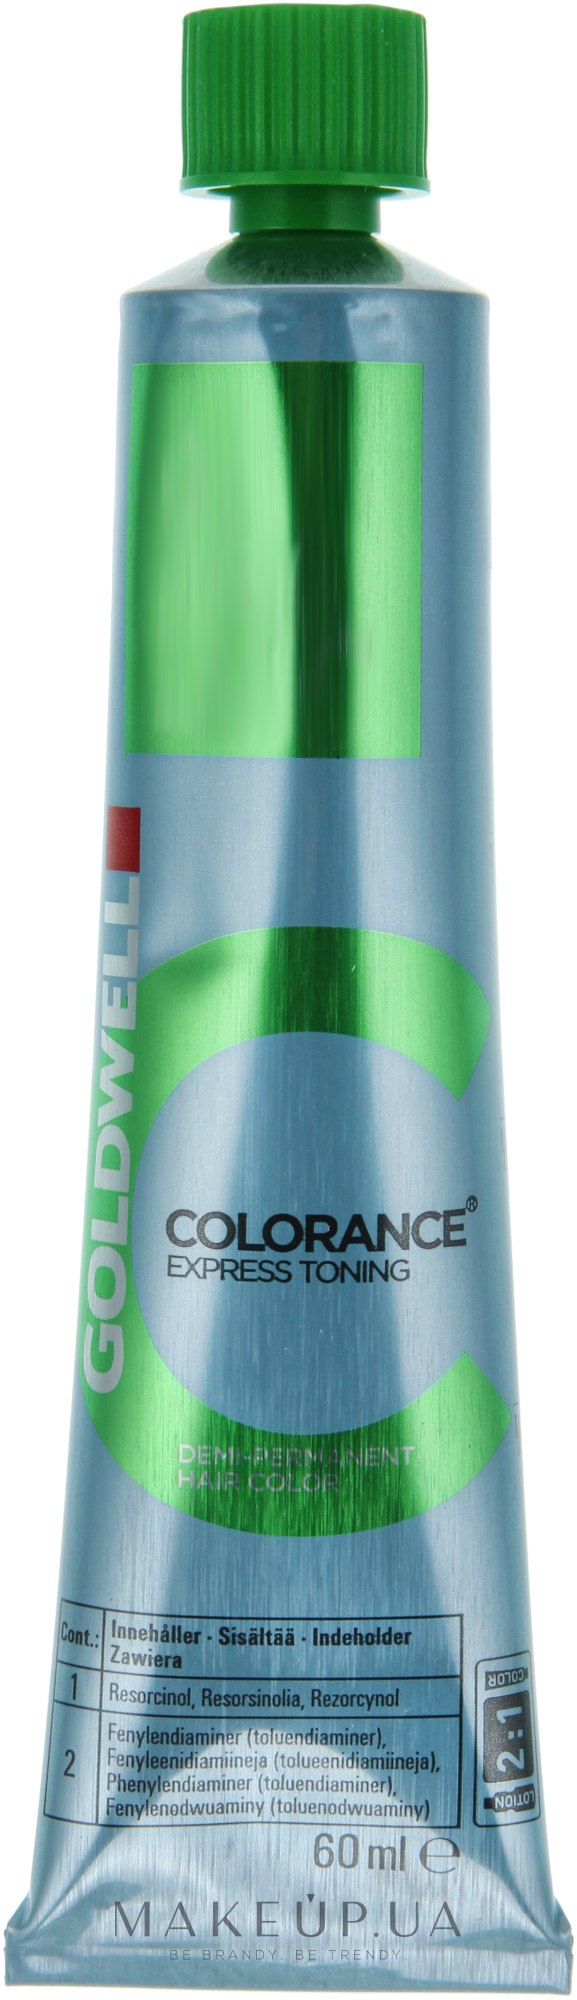 goldwell colorance express toning instructions